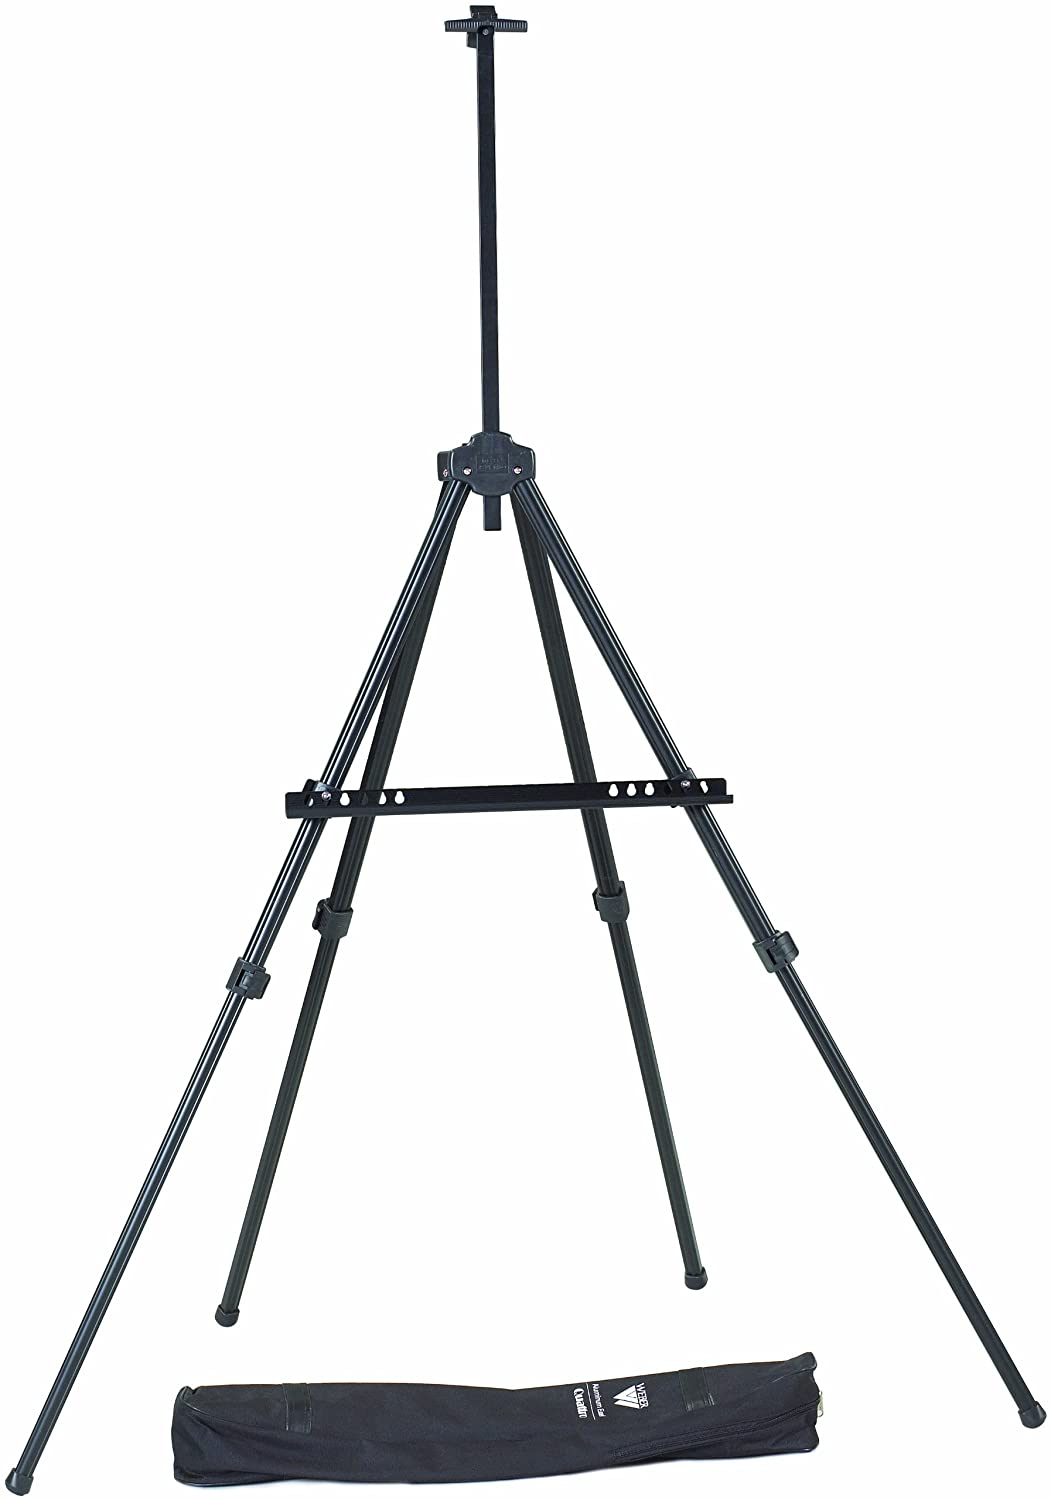 Martin Quattro 4-Legged Metal Easel, For Canvas Up to 46-1/2 Inches in Height, 1 Each (92-AE044)